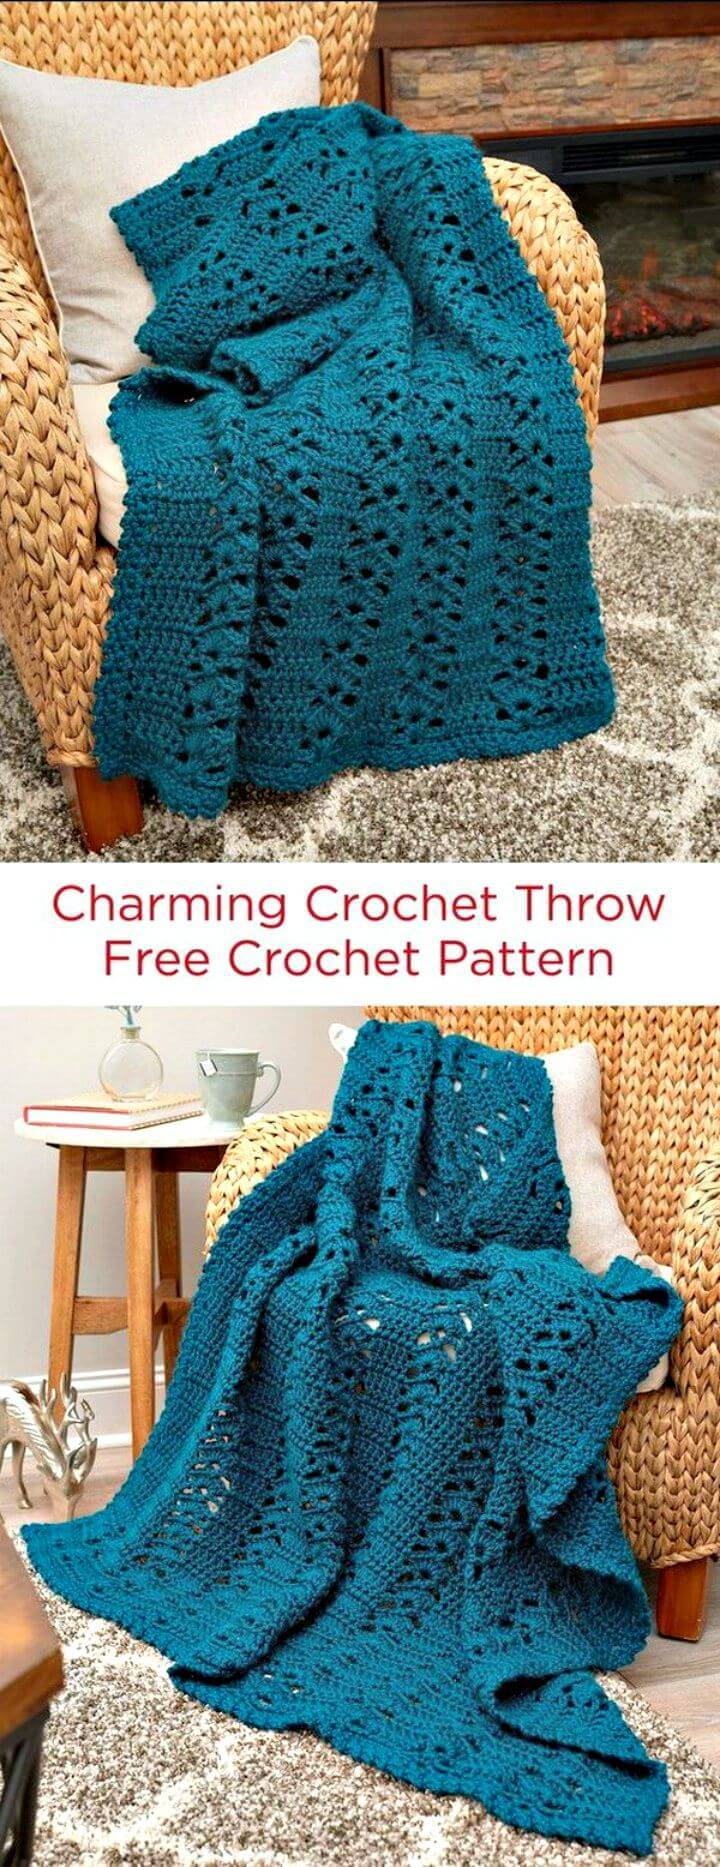 Crochet Afghan Patterns 41 Free Patterns For Beginners Diy Crafts